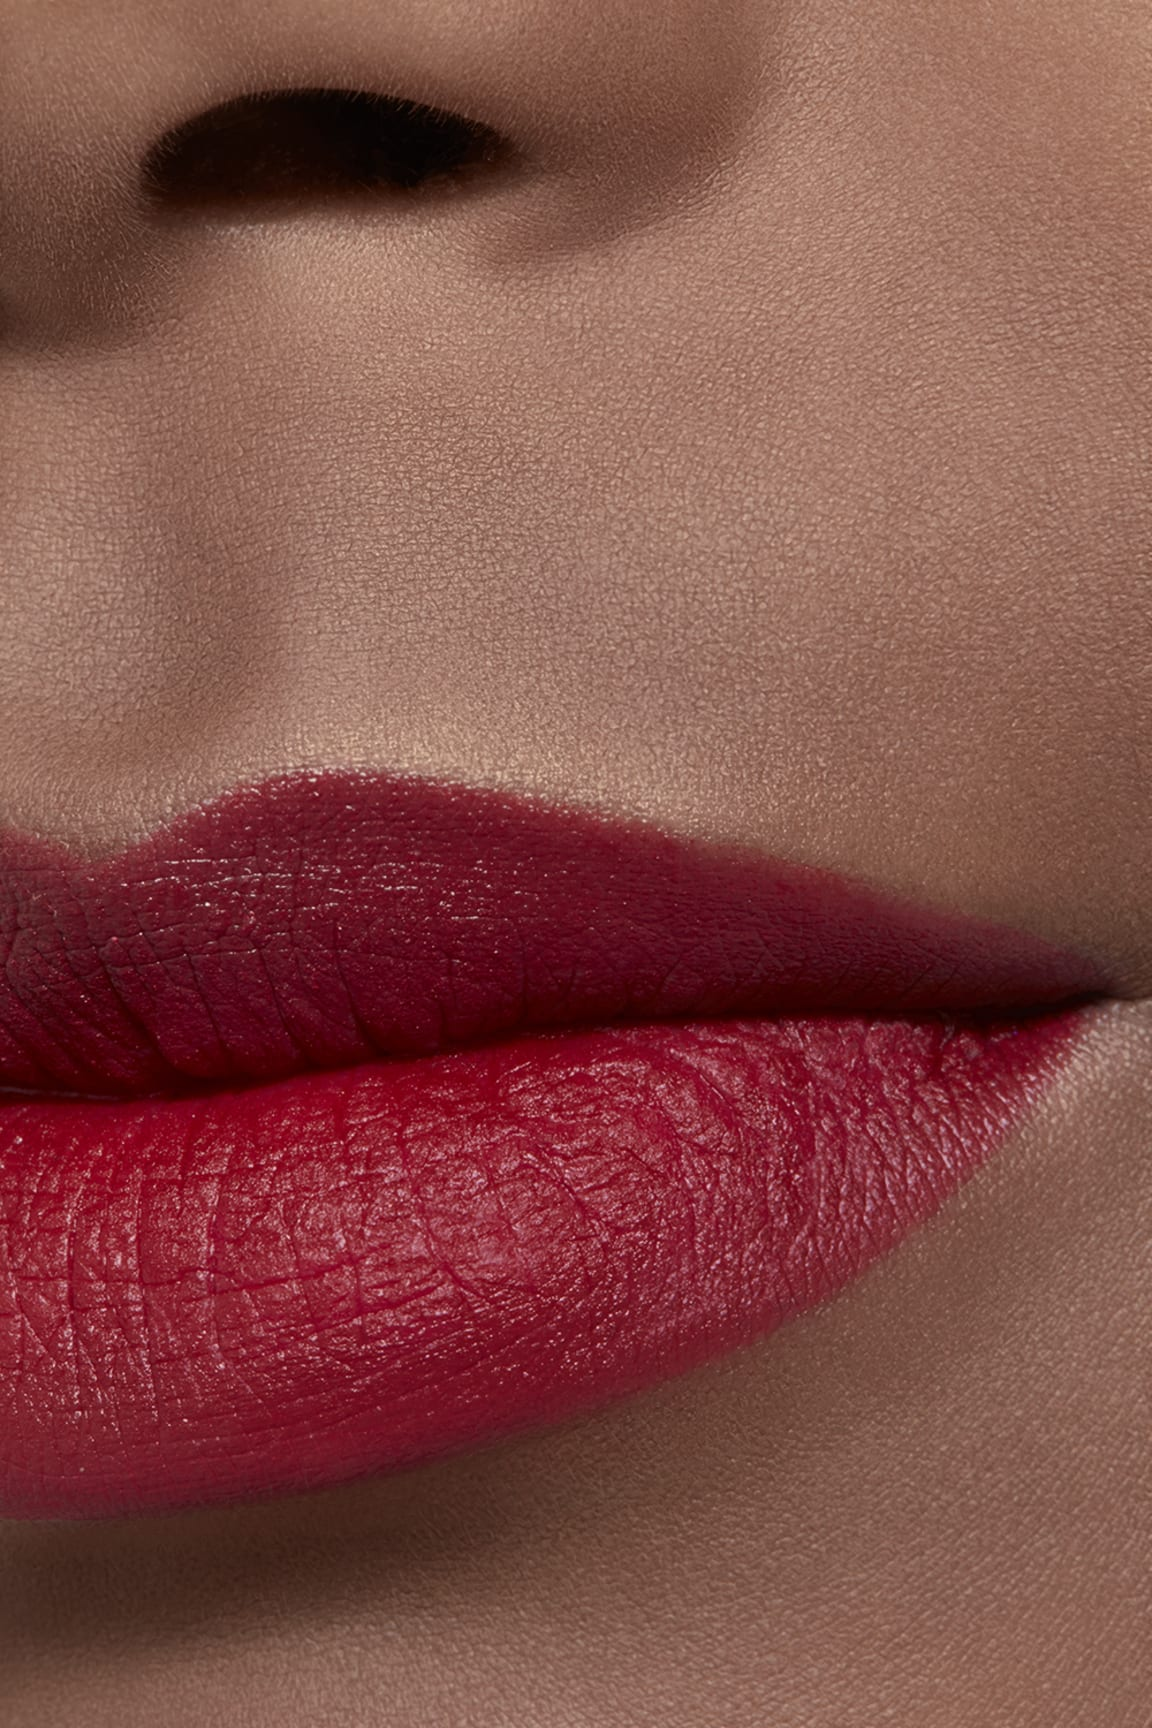 Application makeup visual 2 - ROUGE ALLURE VELVET 58 - ROUGE VIE